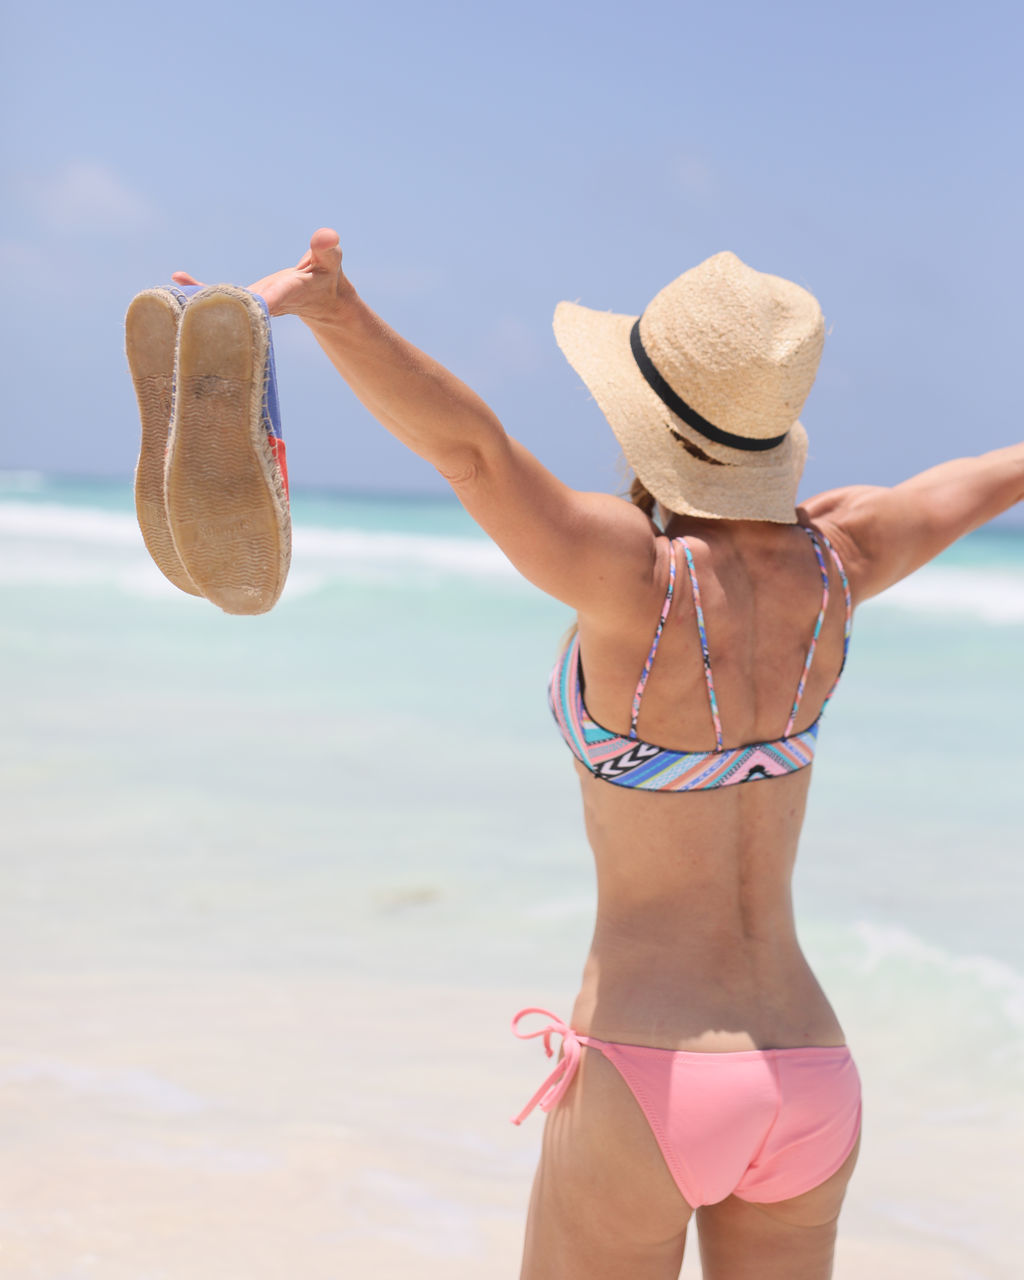 Rear View Of Woman Wearing Bikini While Standing On Shore At Beach